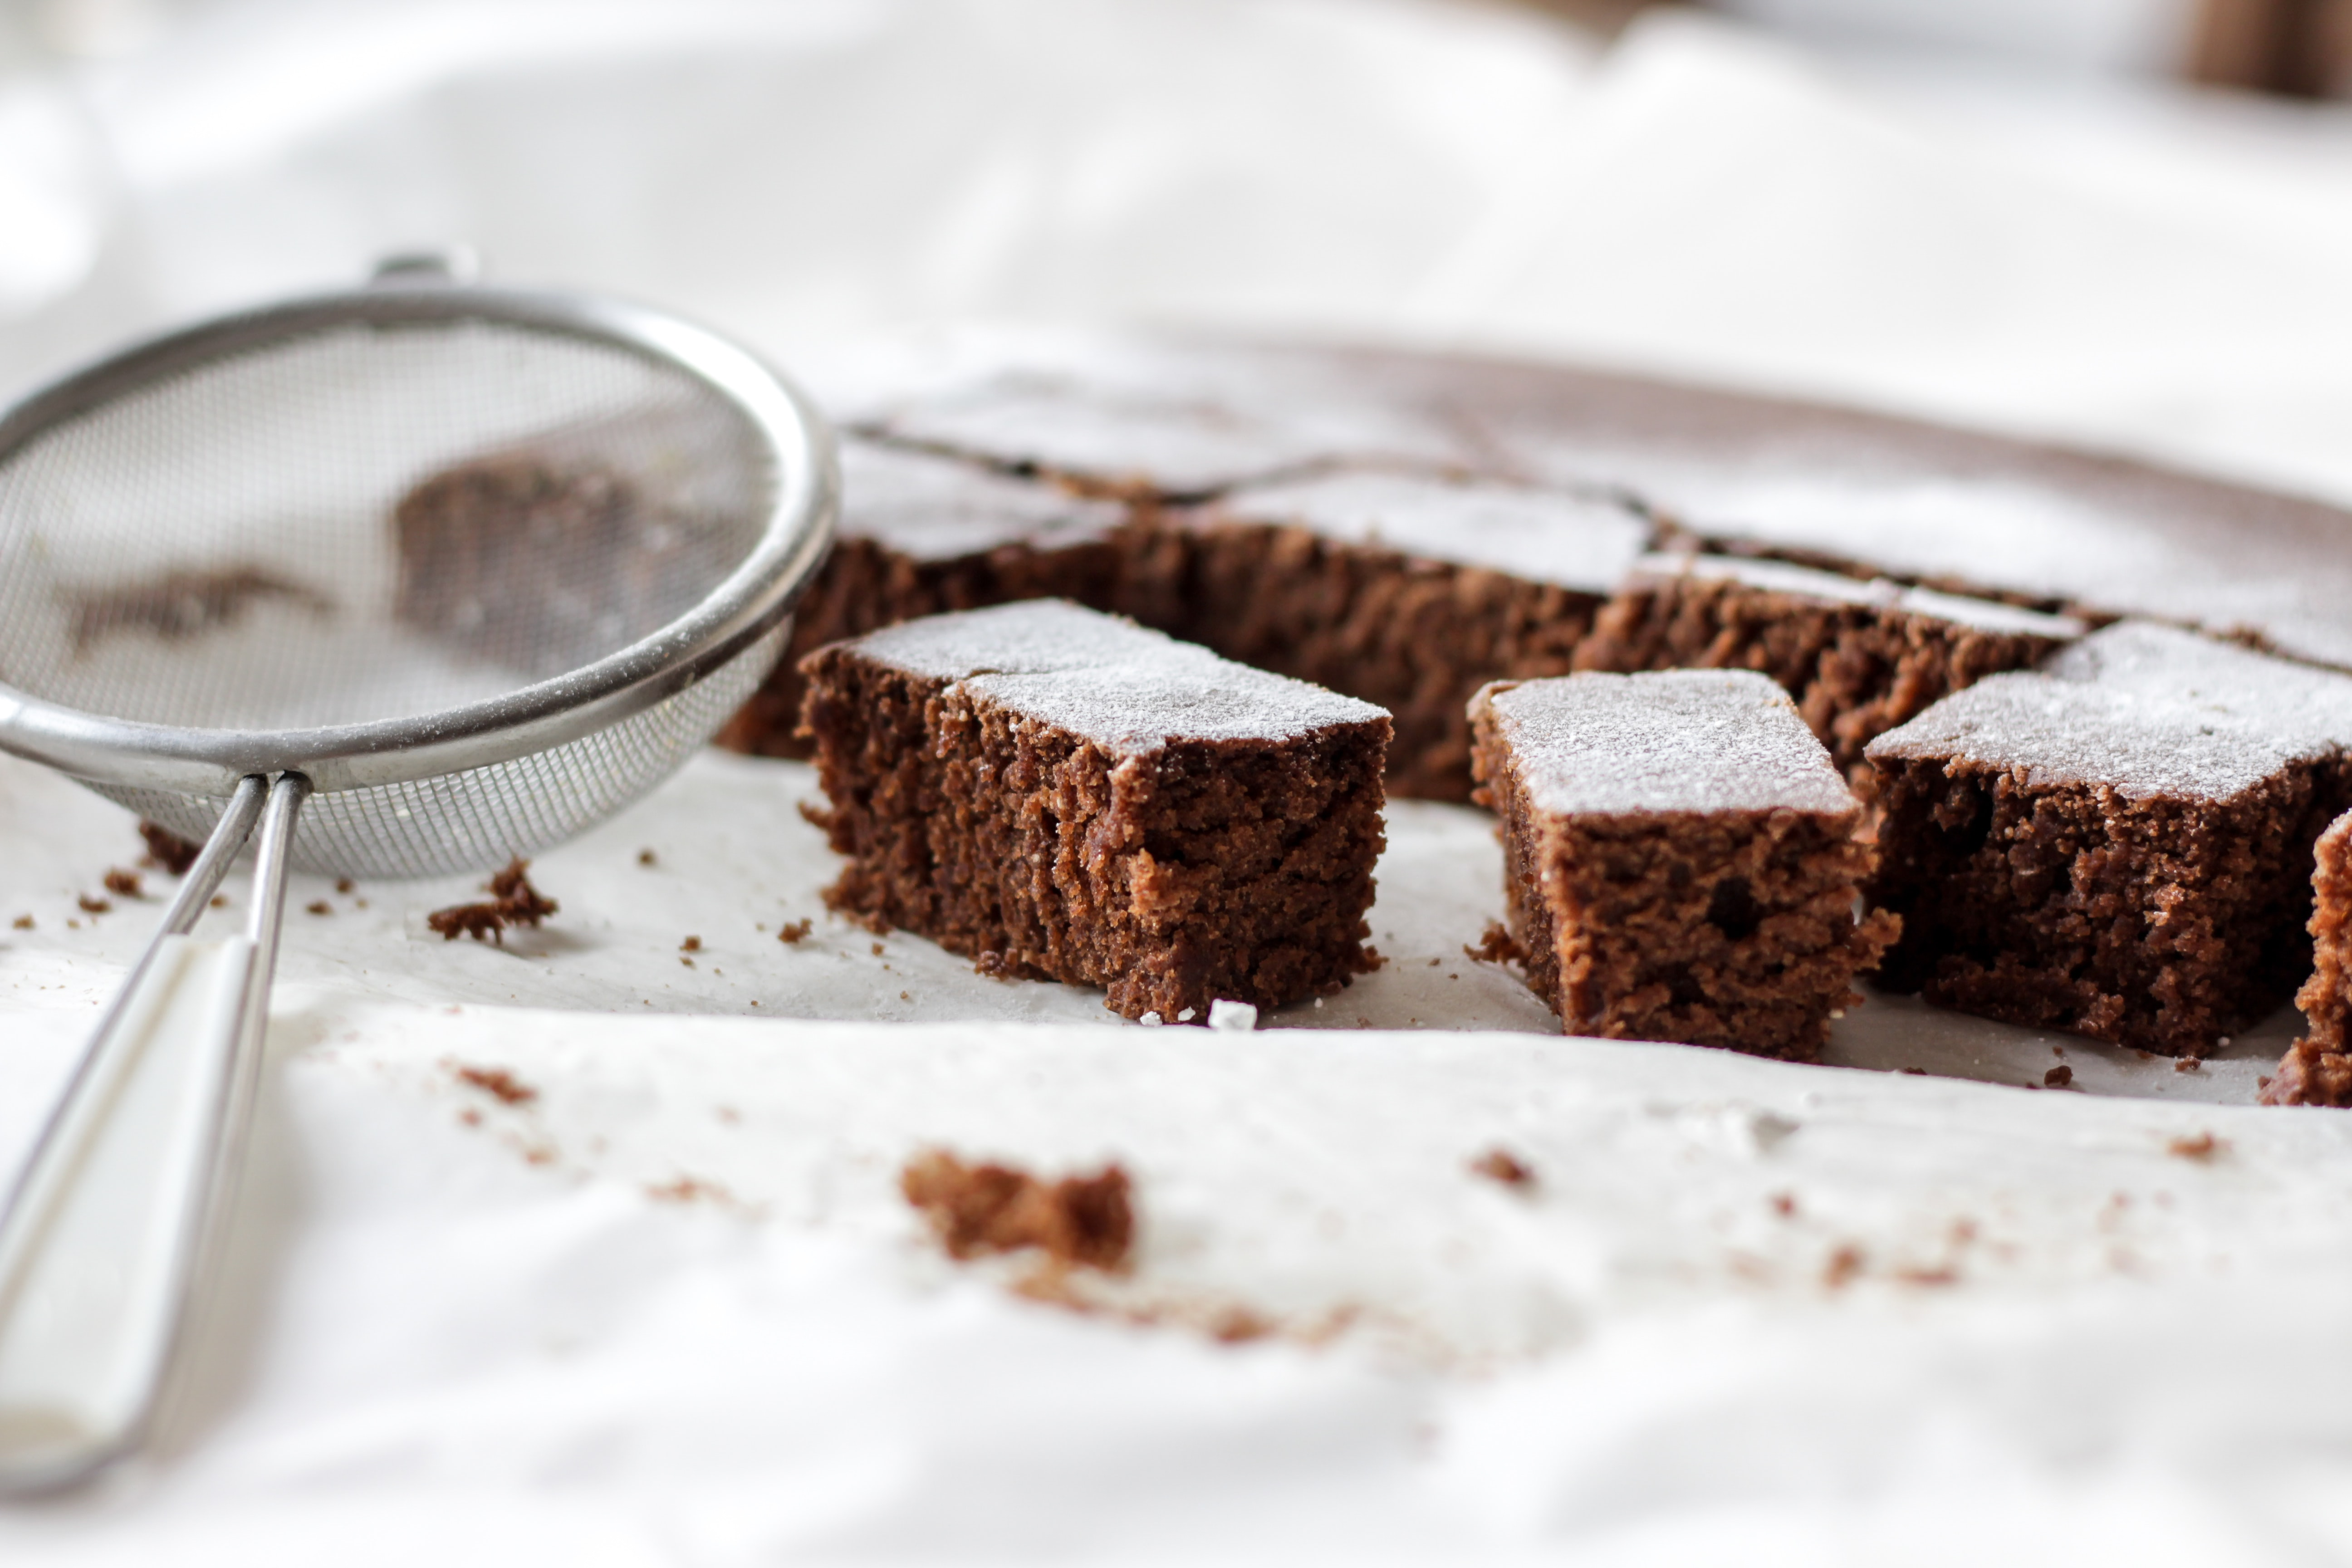 slice of brownies beside silver strainers